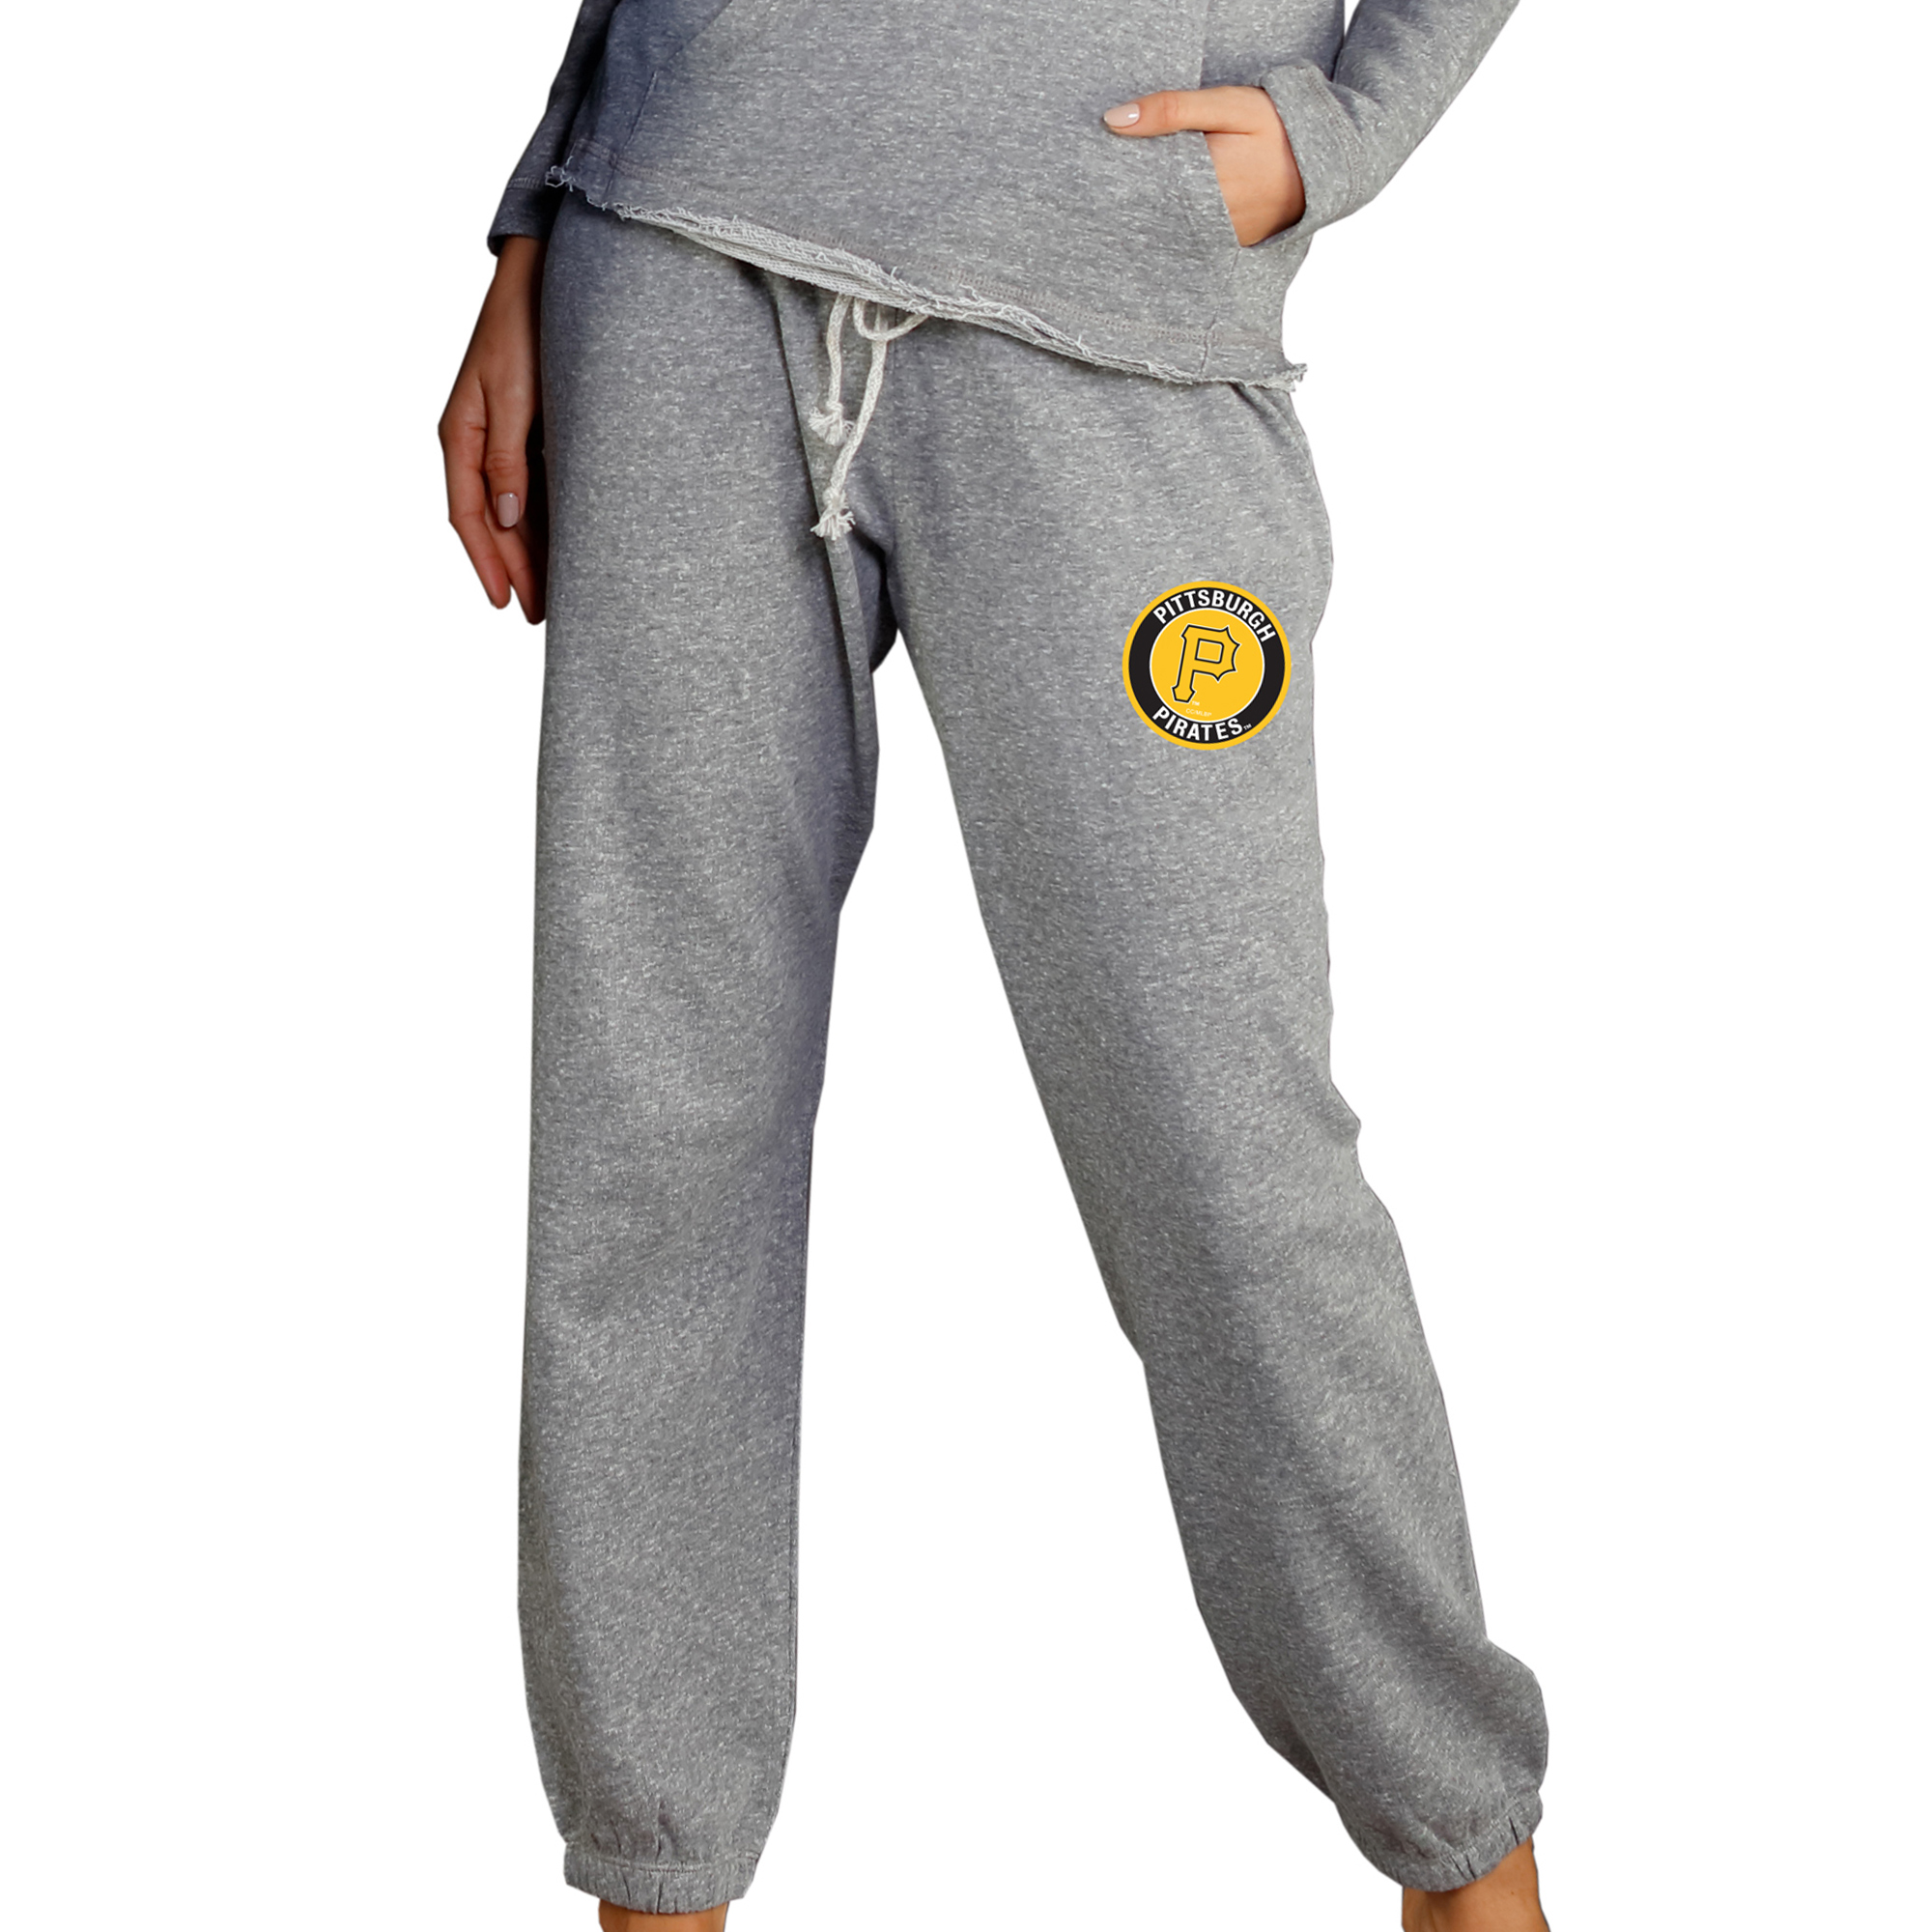 Pittsburgh Pirates Concepts Sport Women's Mainstream Knit Pants - Gray